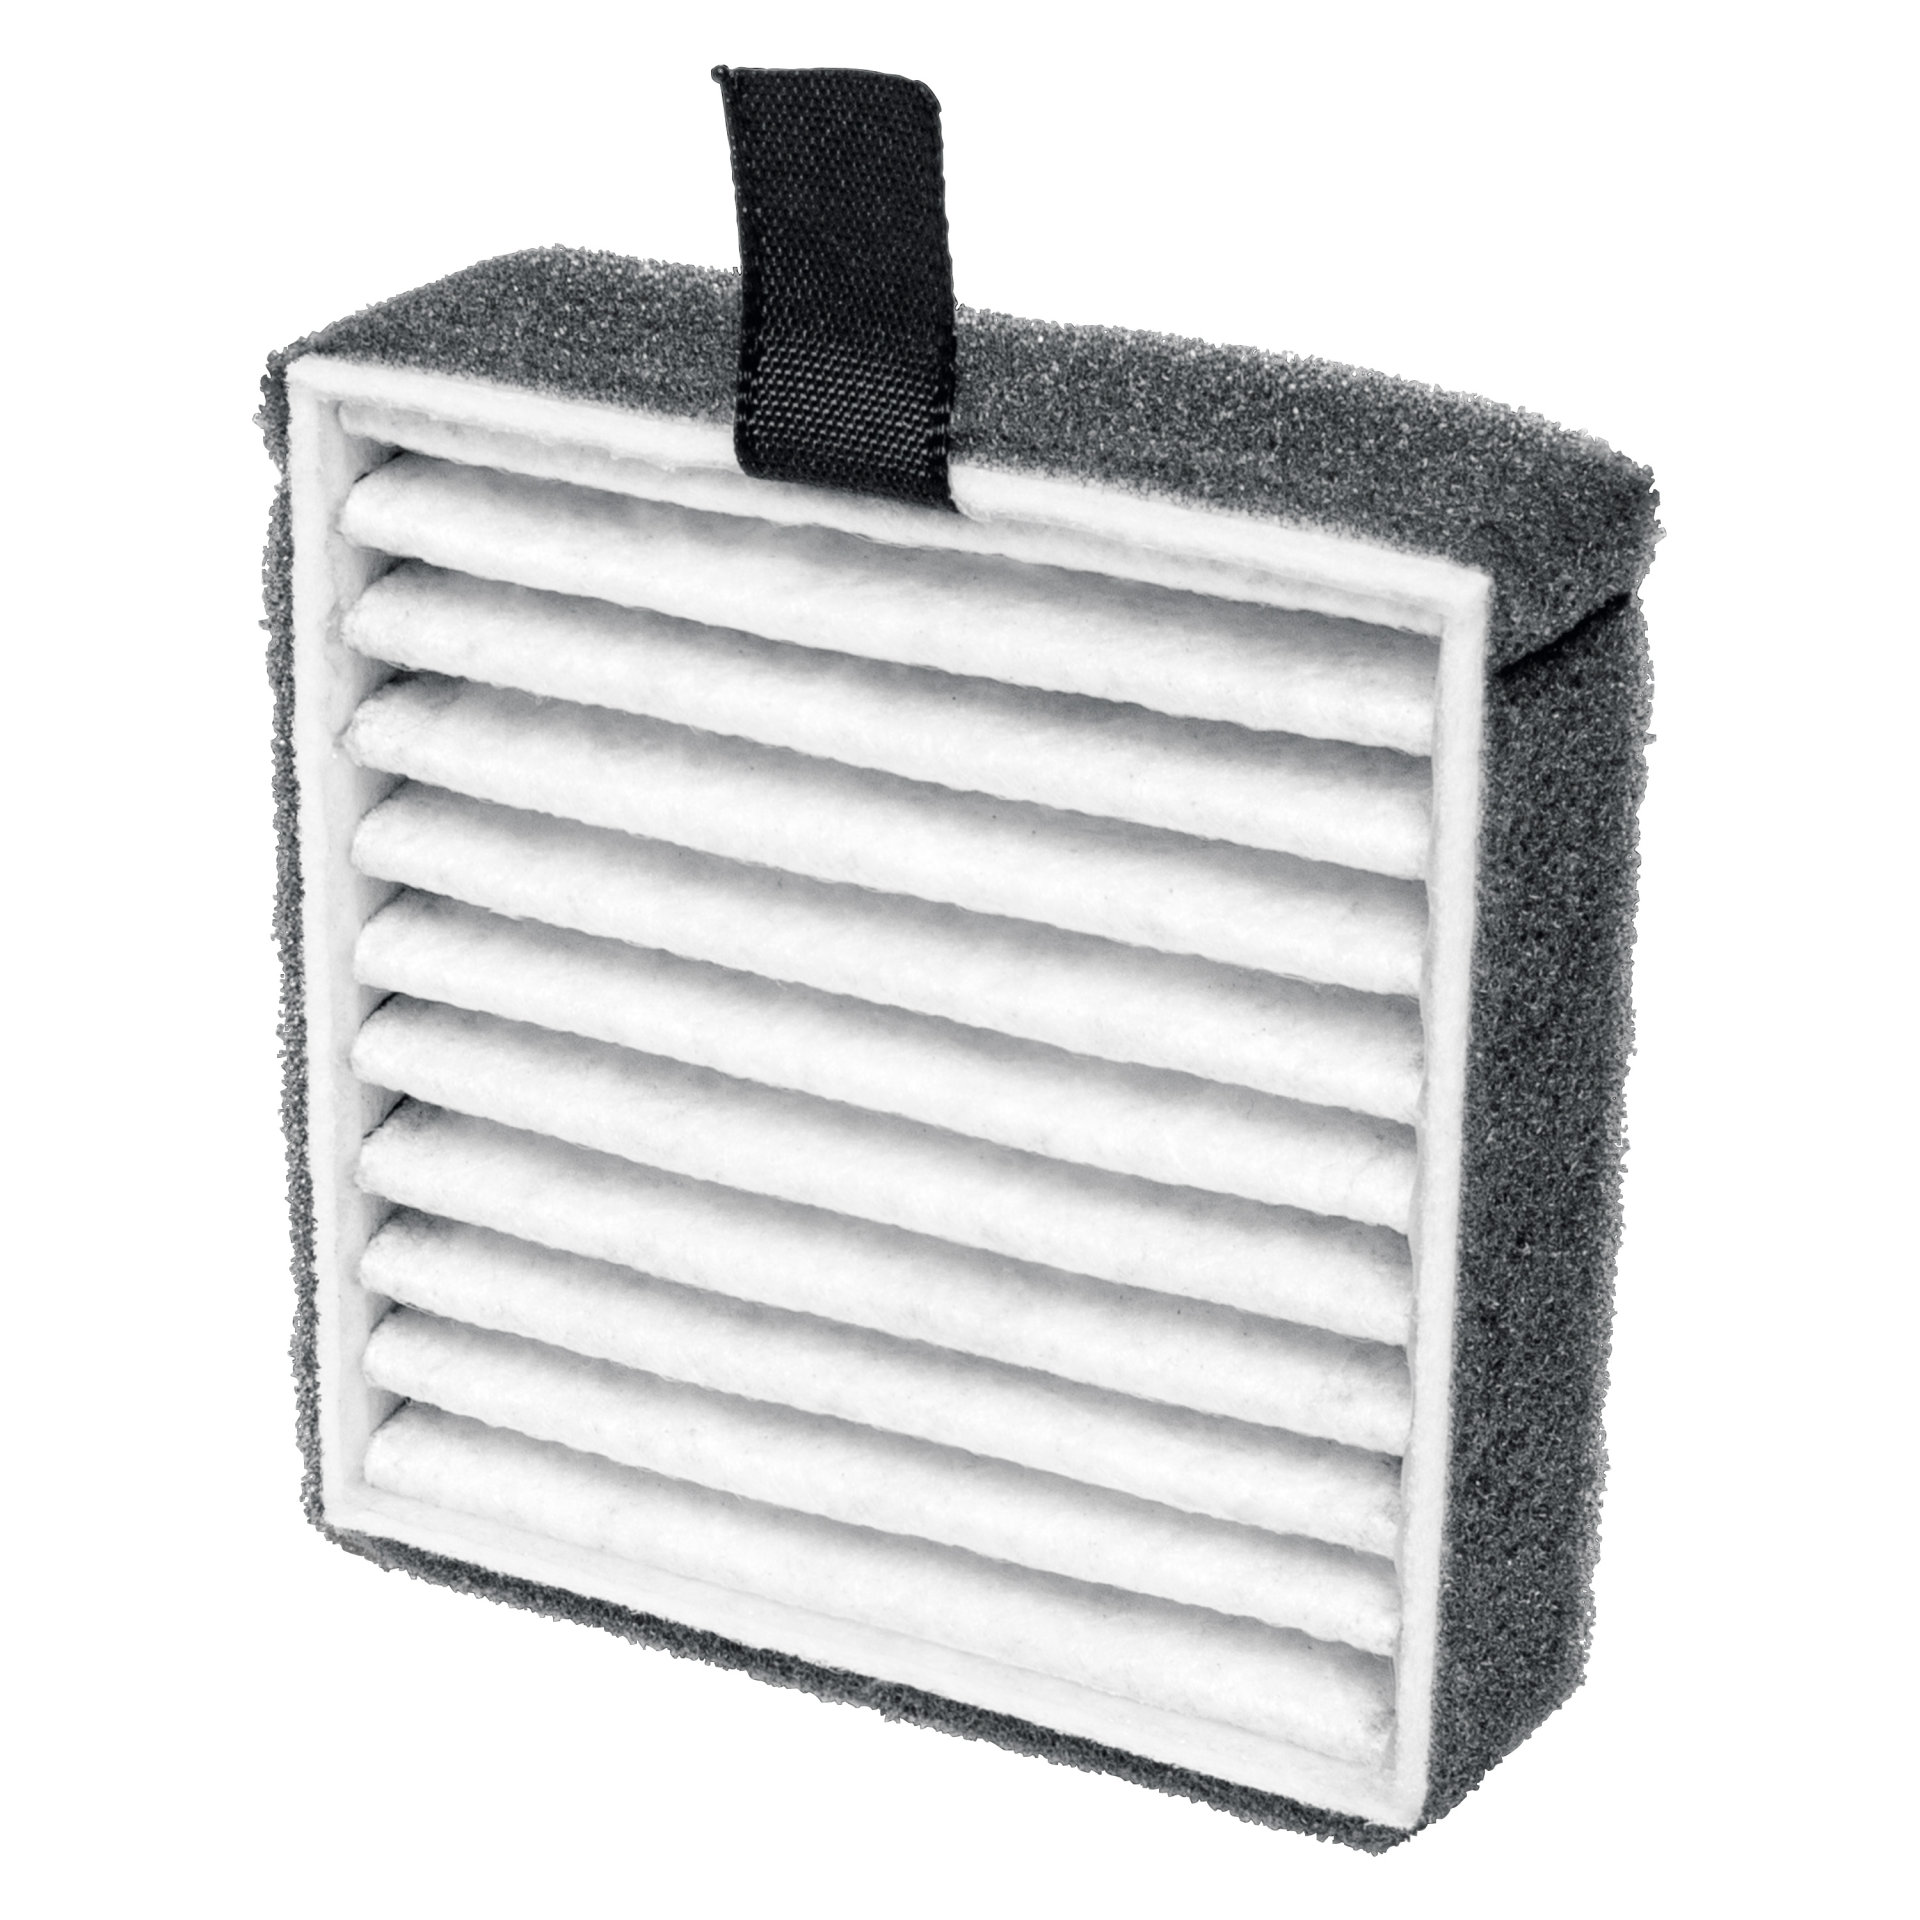 UVC HEPA AIR PURIFIER REPLACEMENT FILTER